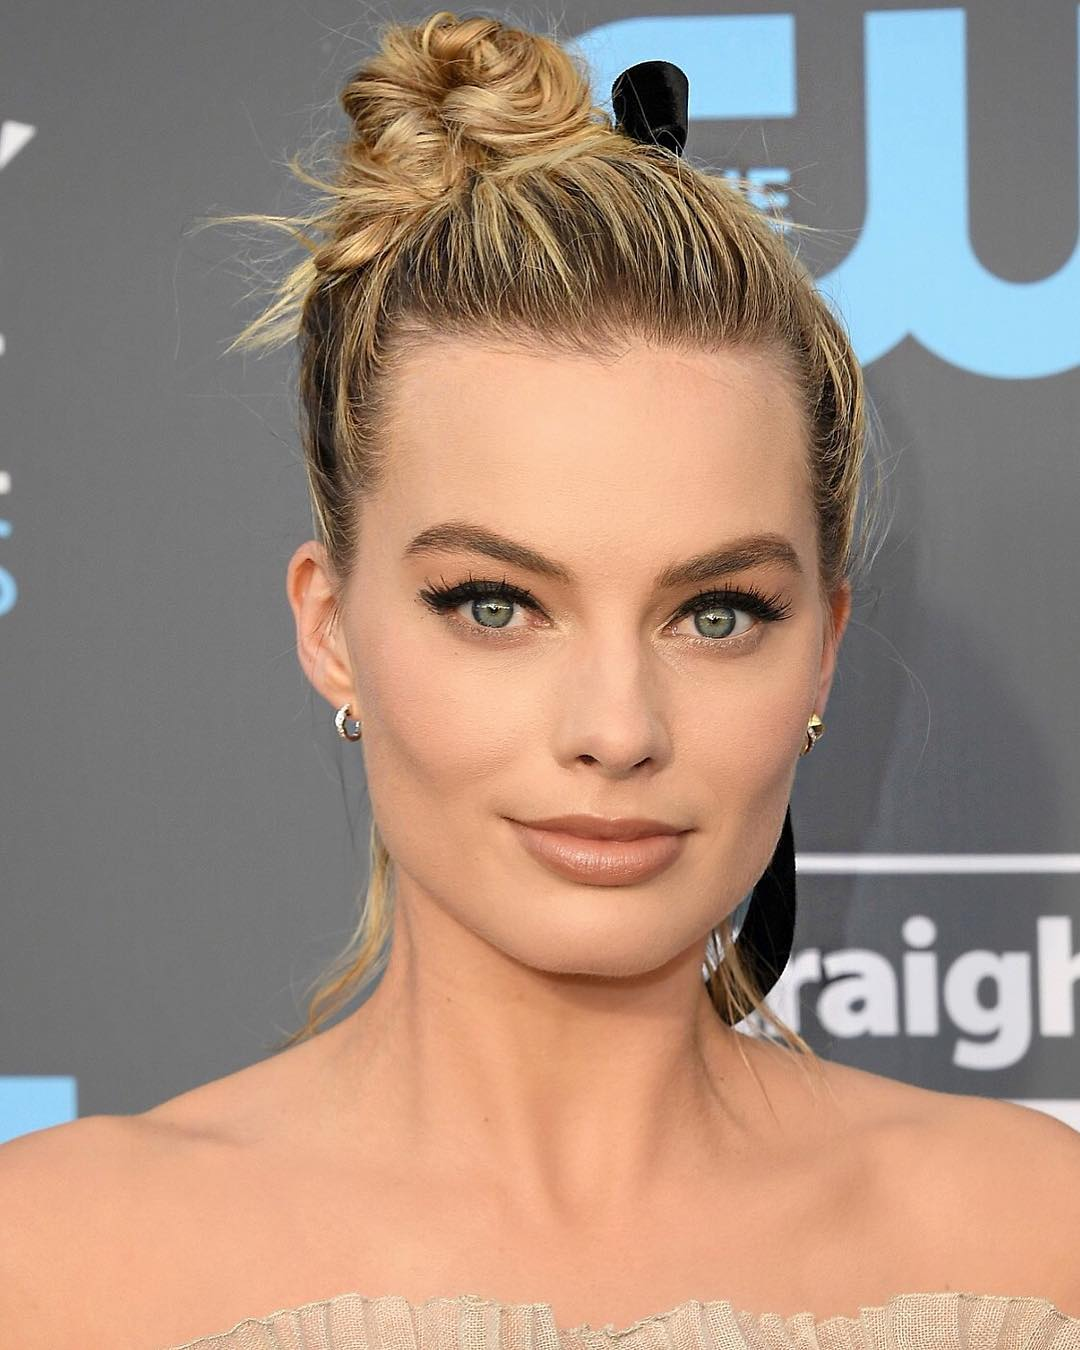 Margot Robbie beauty